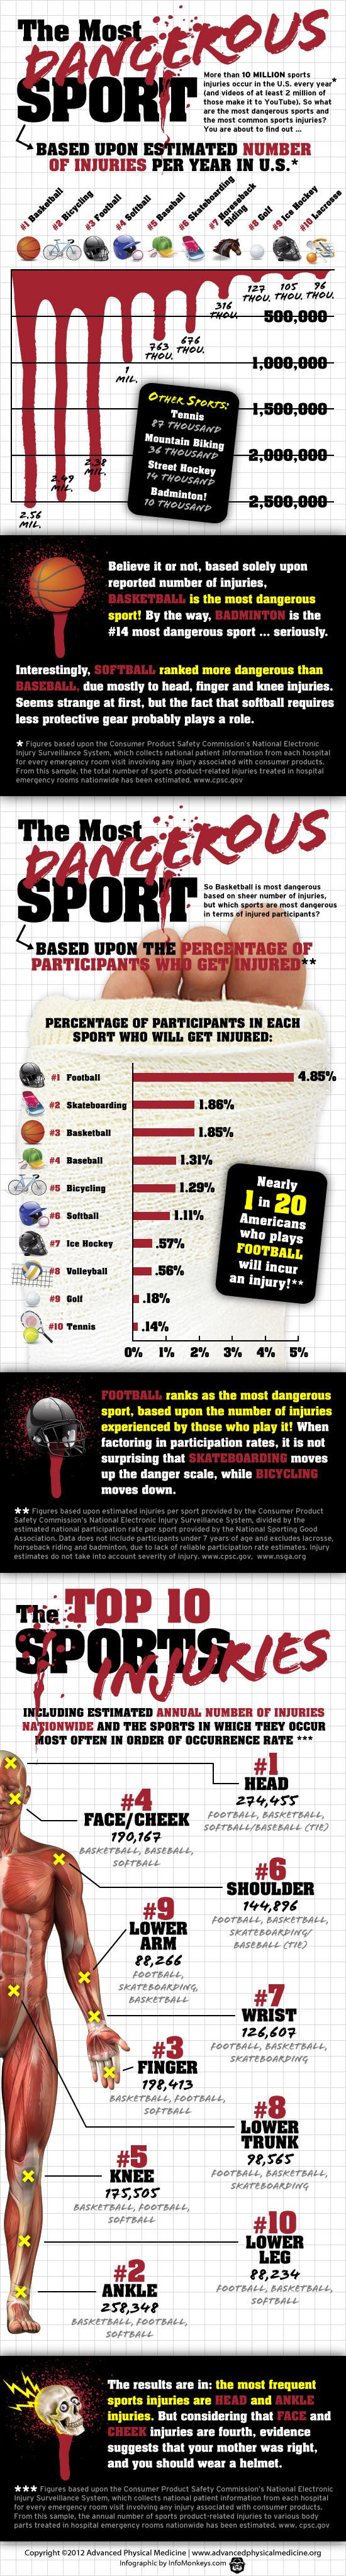 The most dangerous sports by totals, percentages, and locations of injuries.